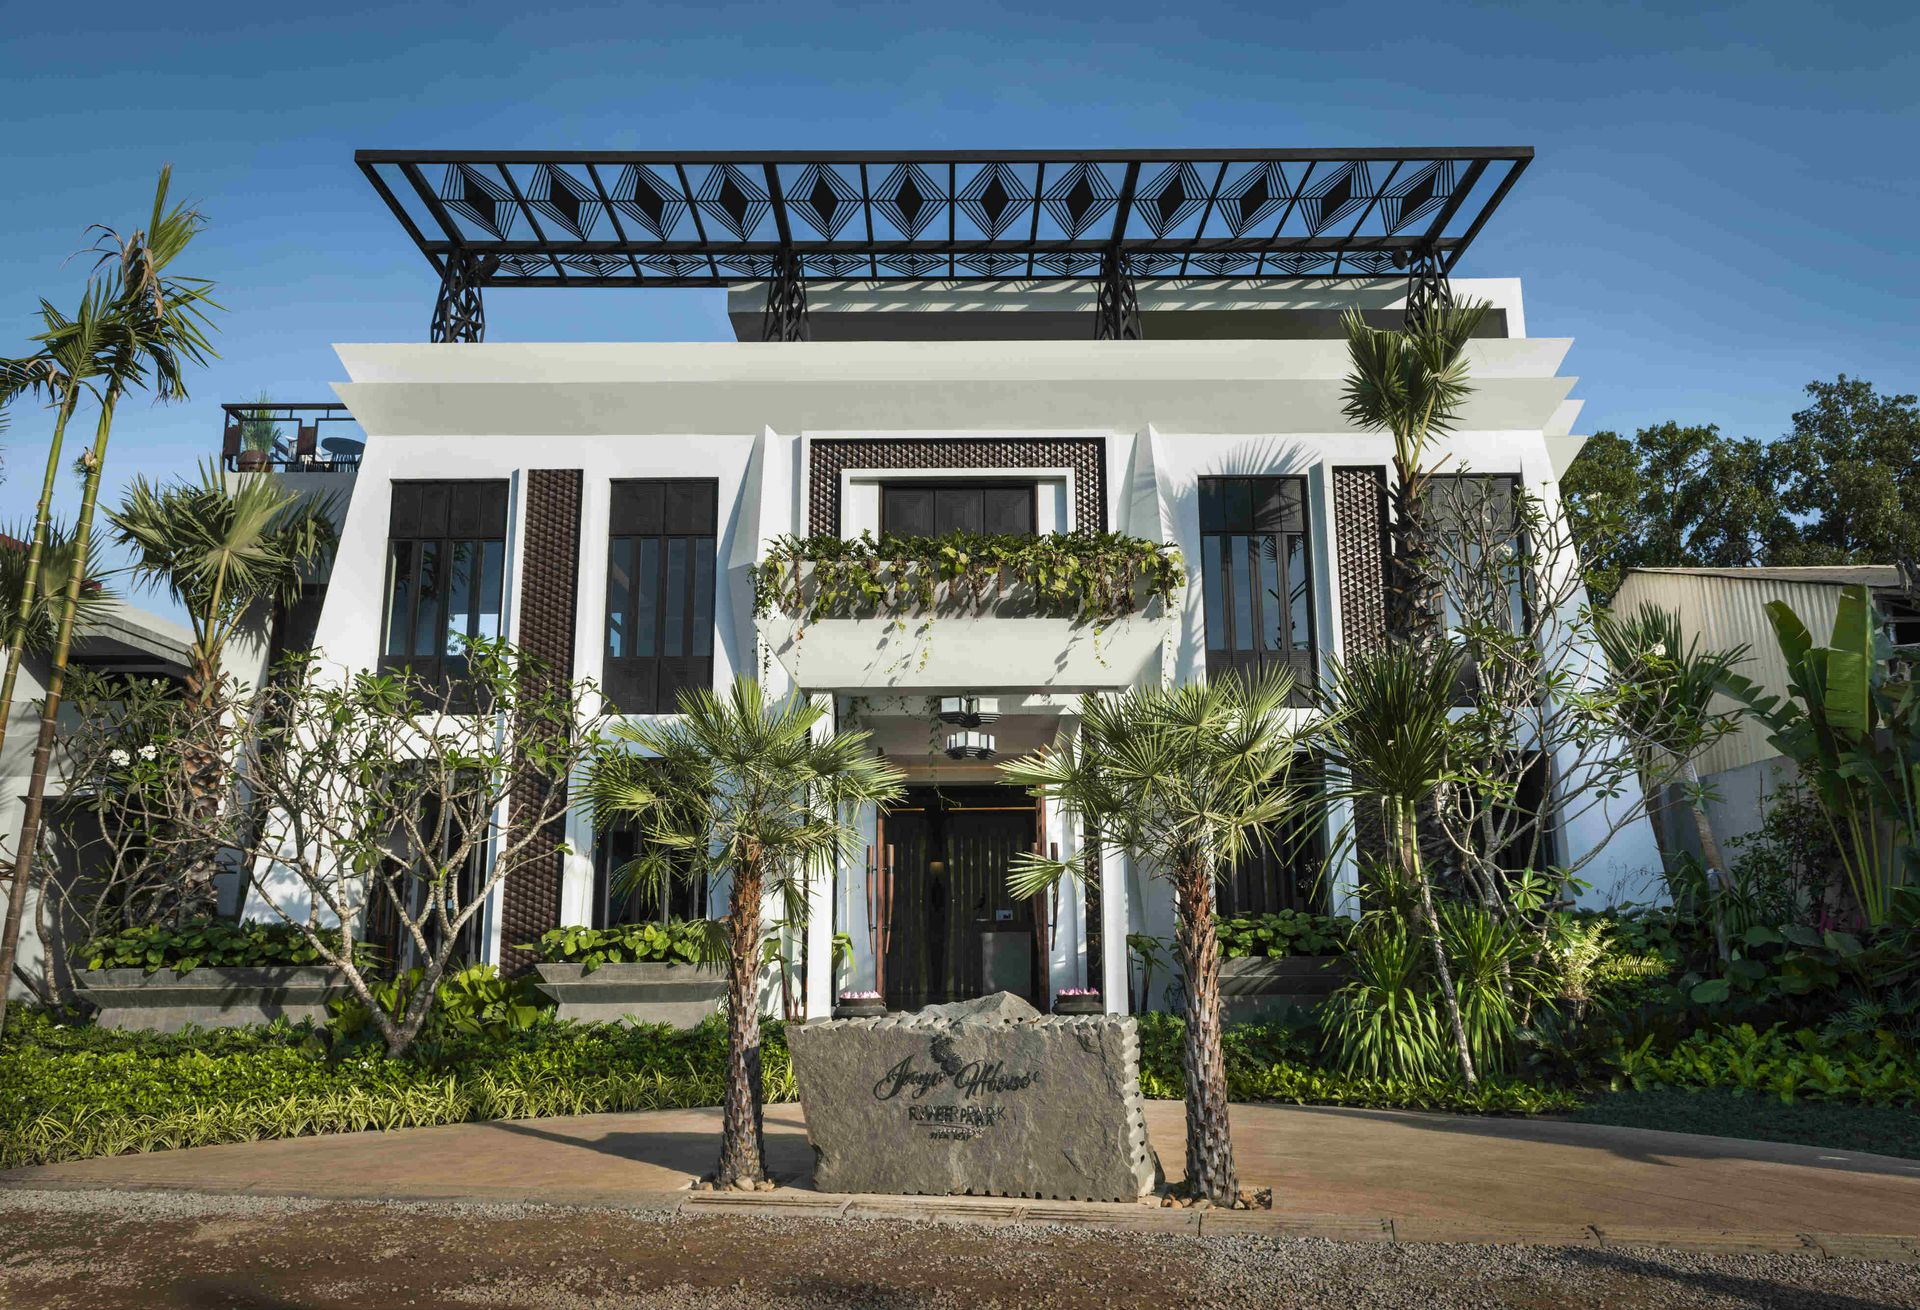 Jaya house river park boutique hotel cambodia original for River north boutique hotels